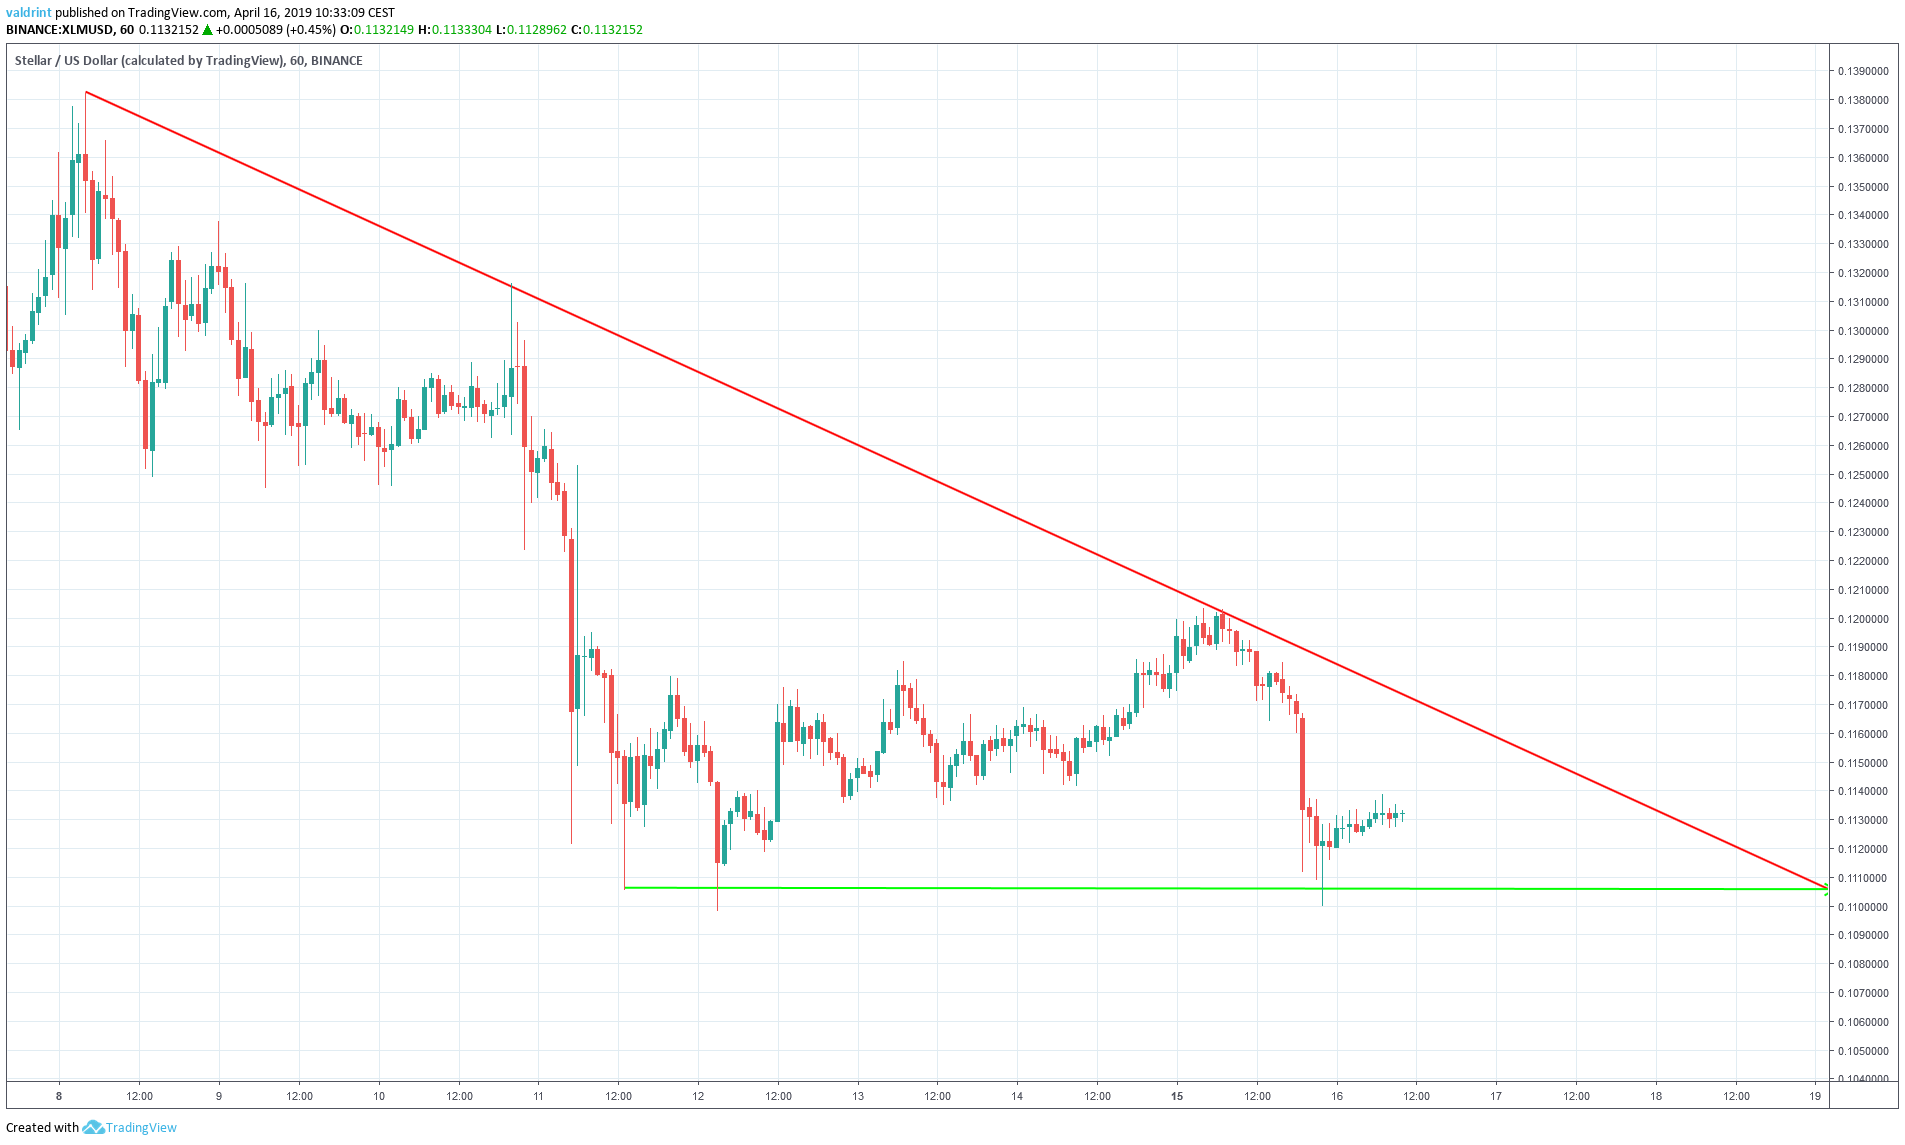 XLM Descending Triangle